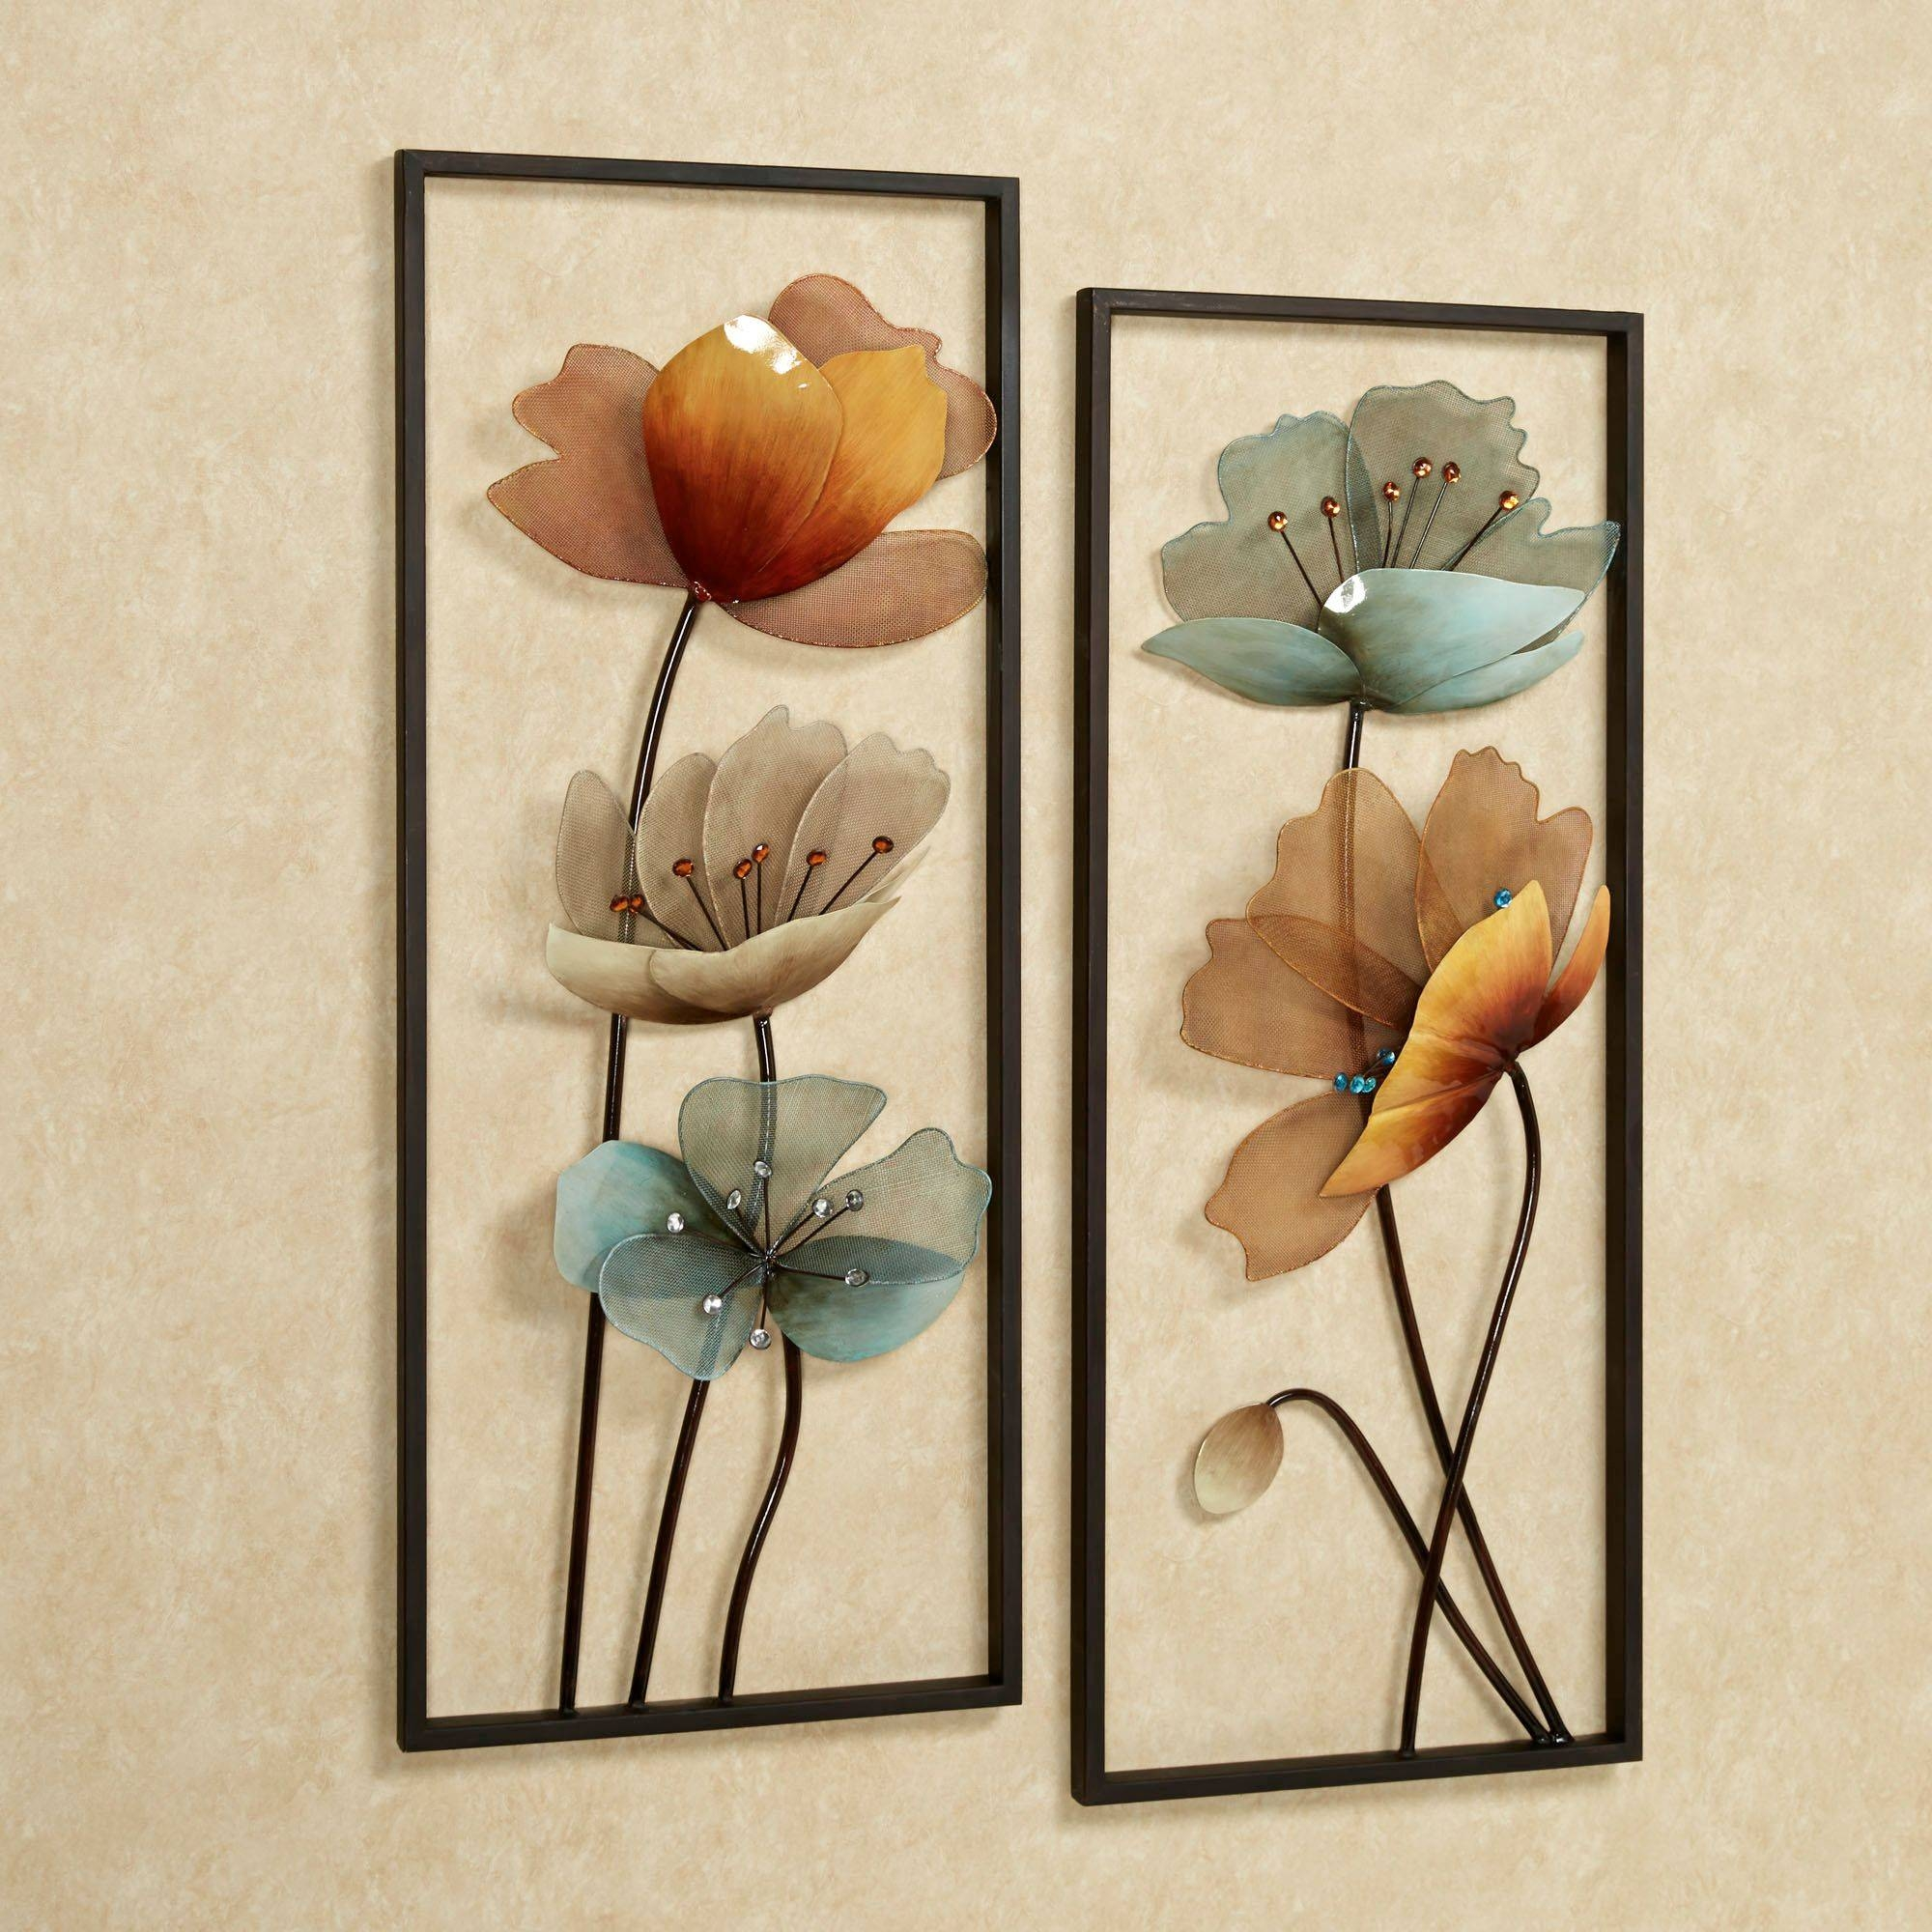 Beauty Decorative Metal Wall Art : Unique Material Decorative With Newest Flower Metal Wall Art Decor (View 2 of 20)